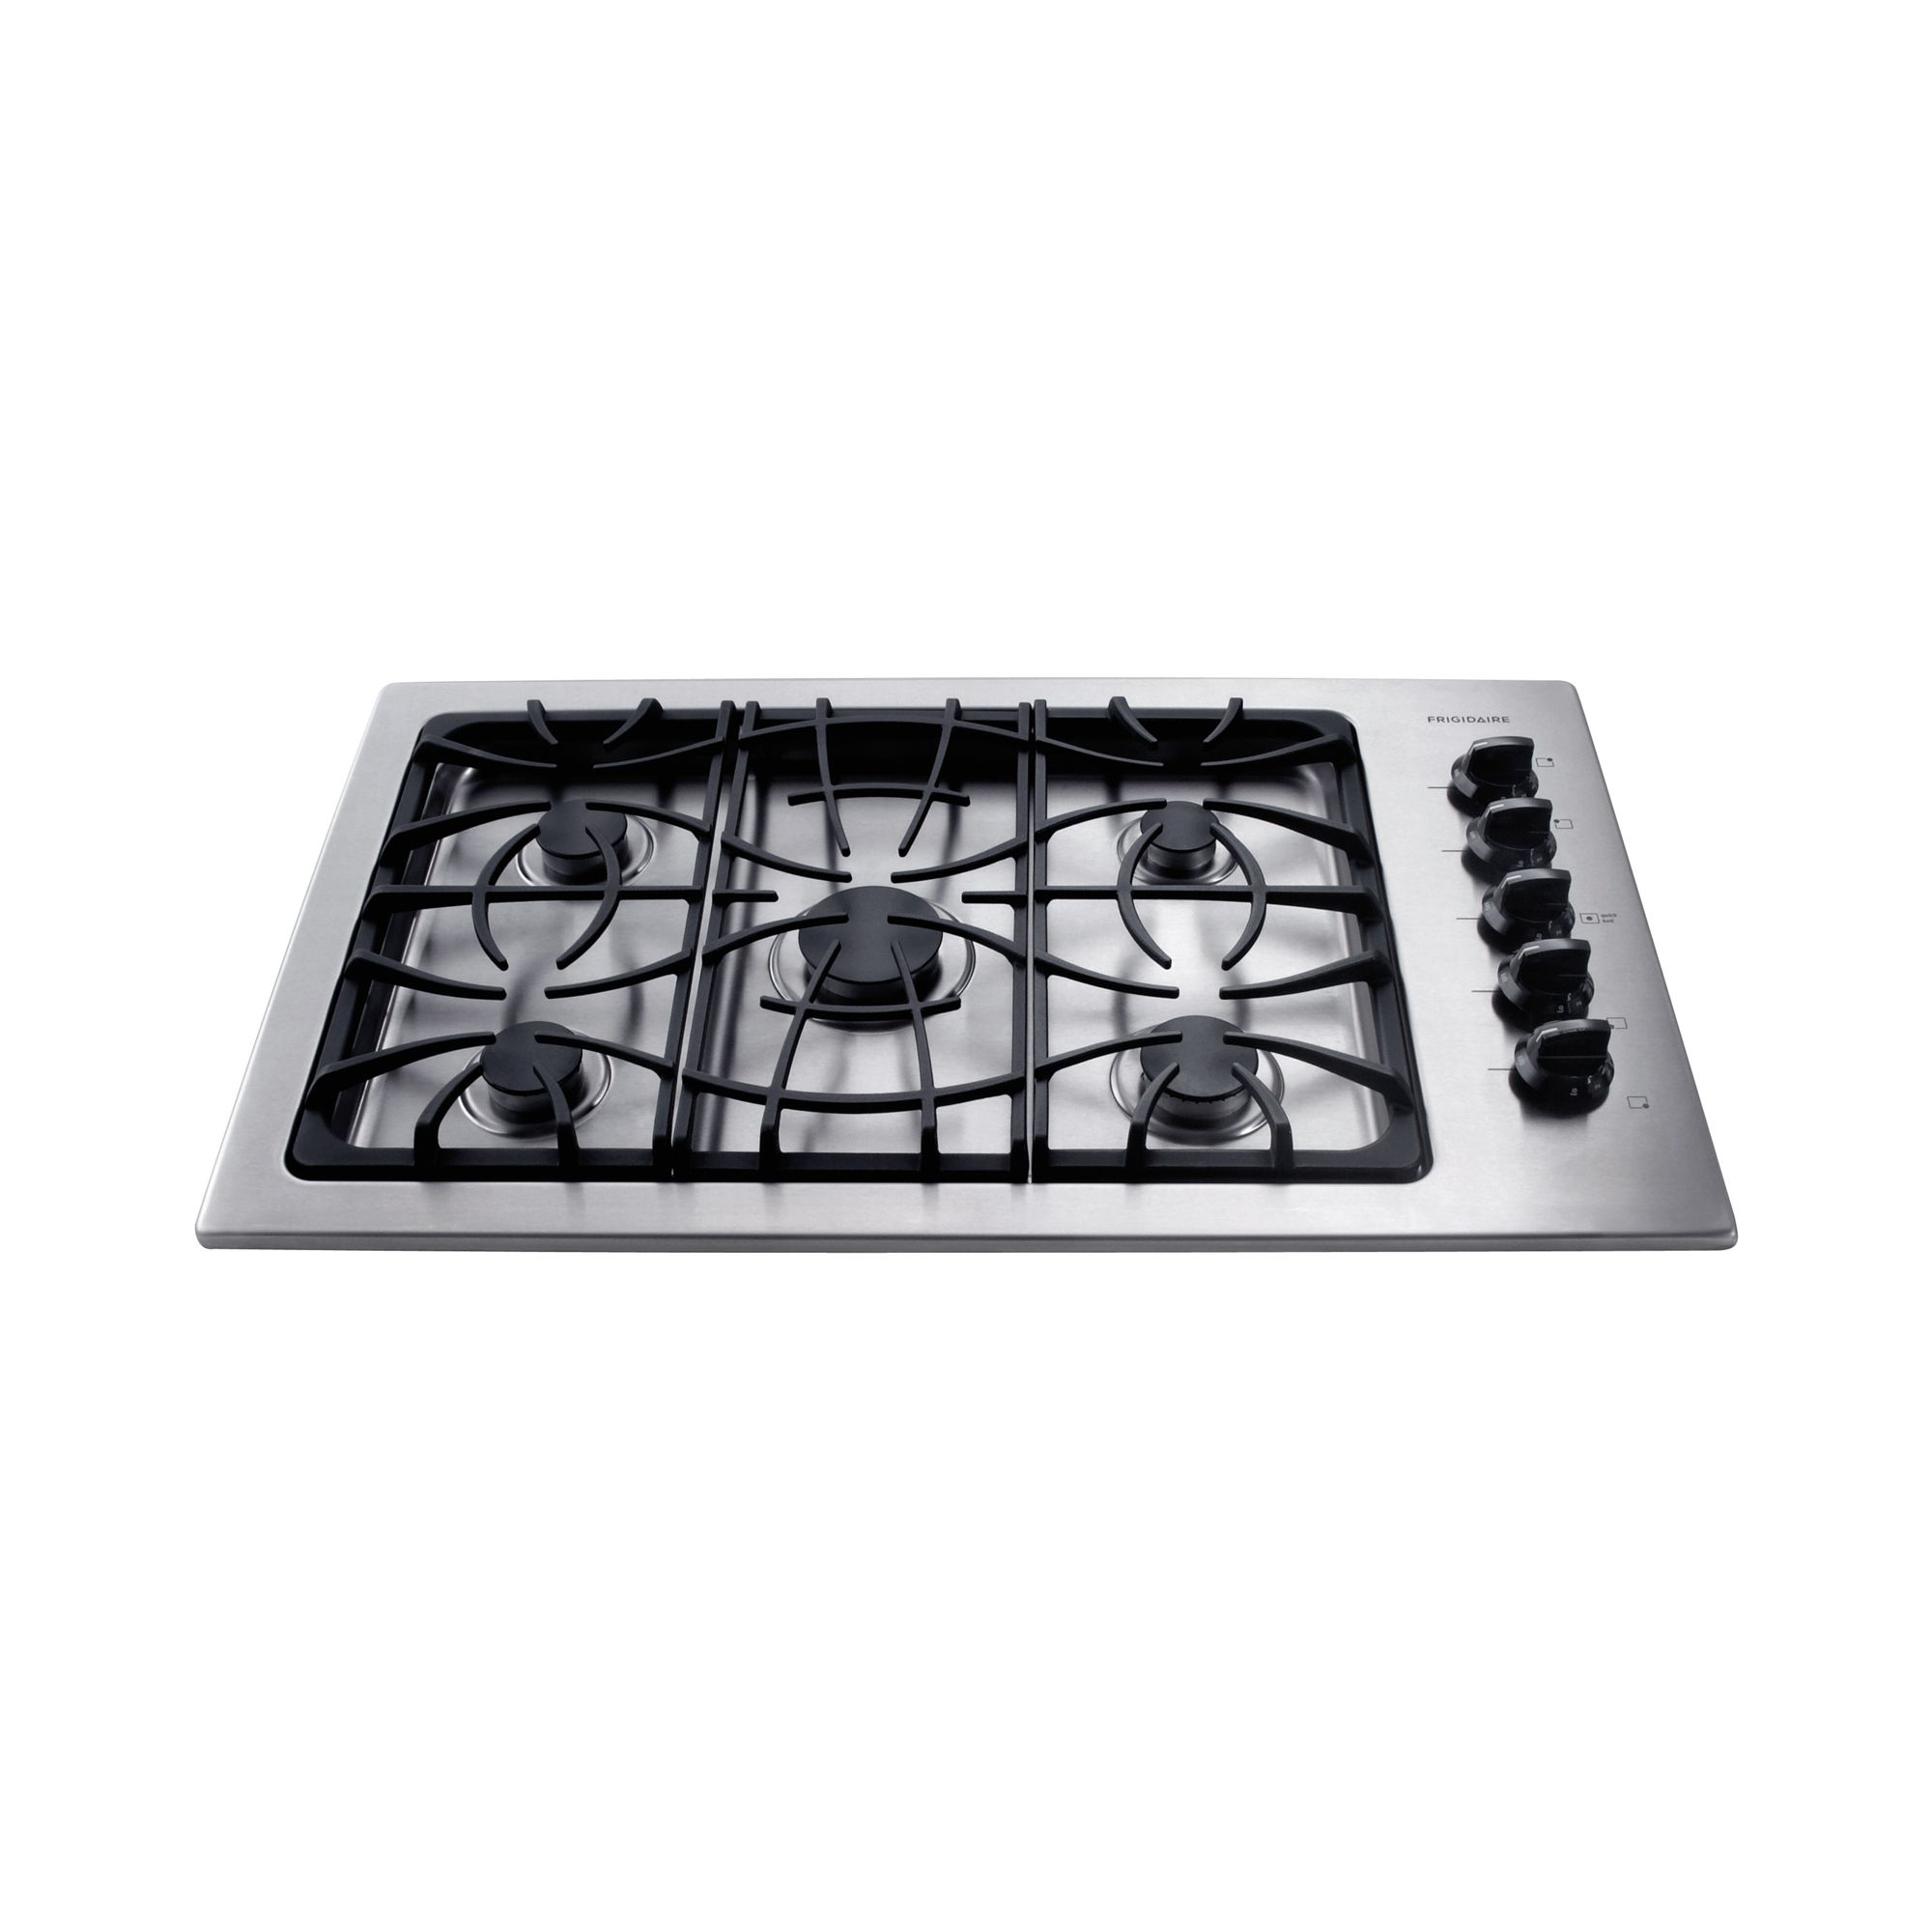 "Frigidaire 36""Sealed Burner Gas Cooktop"